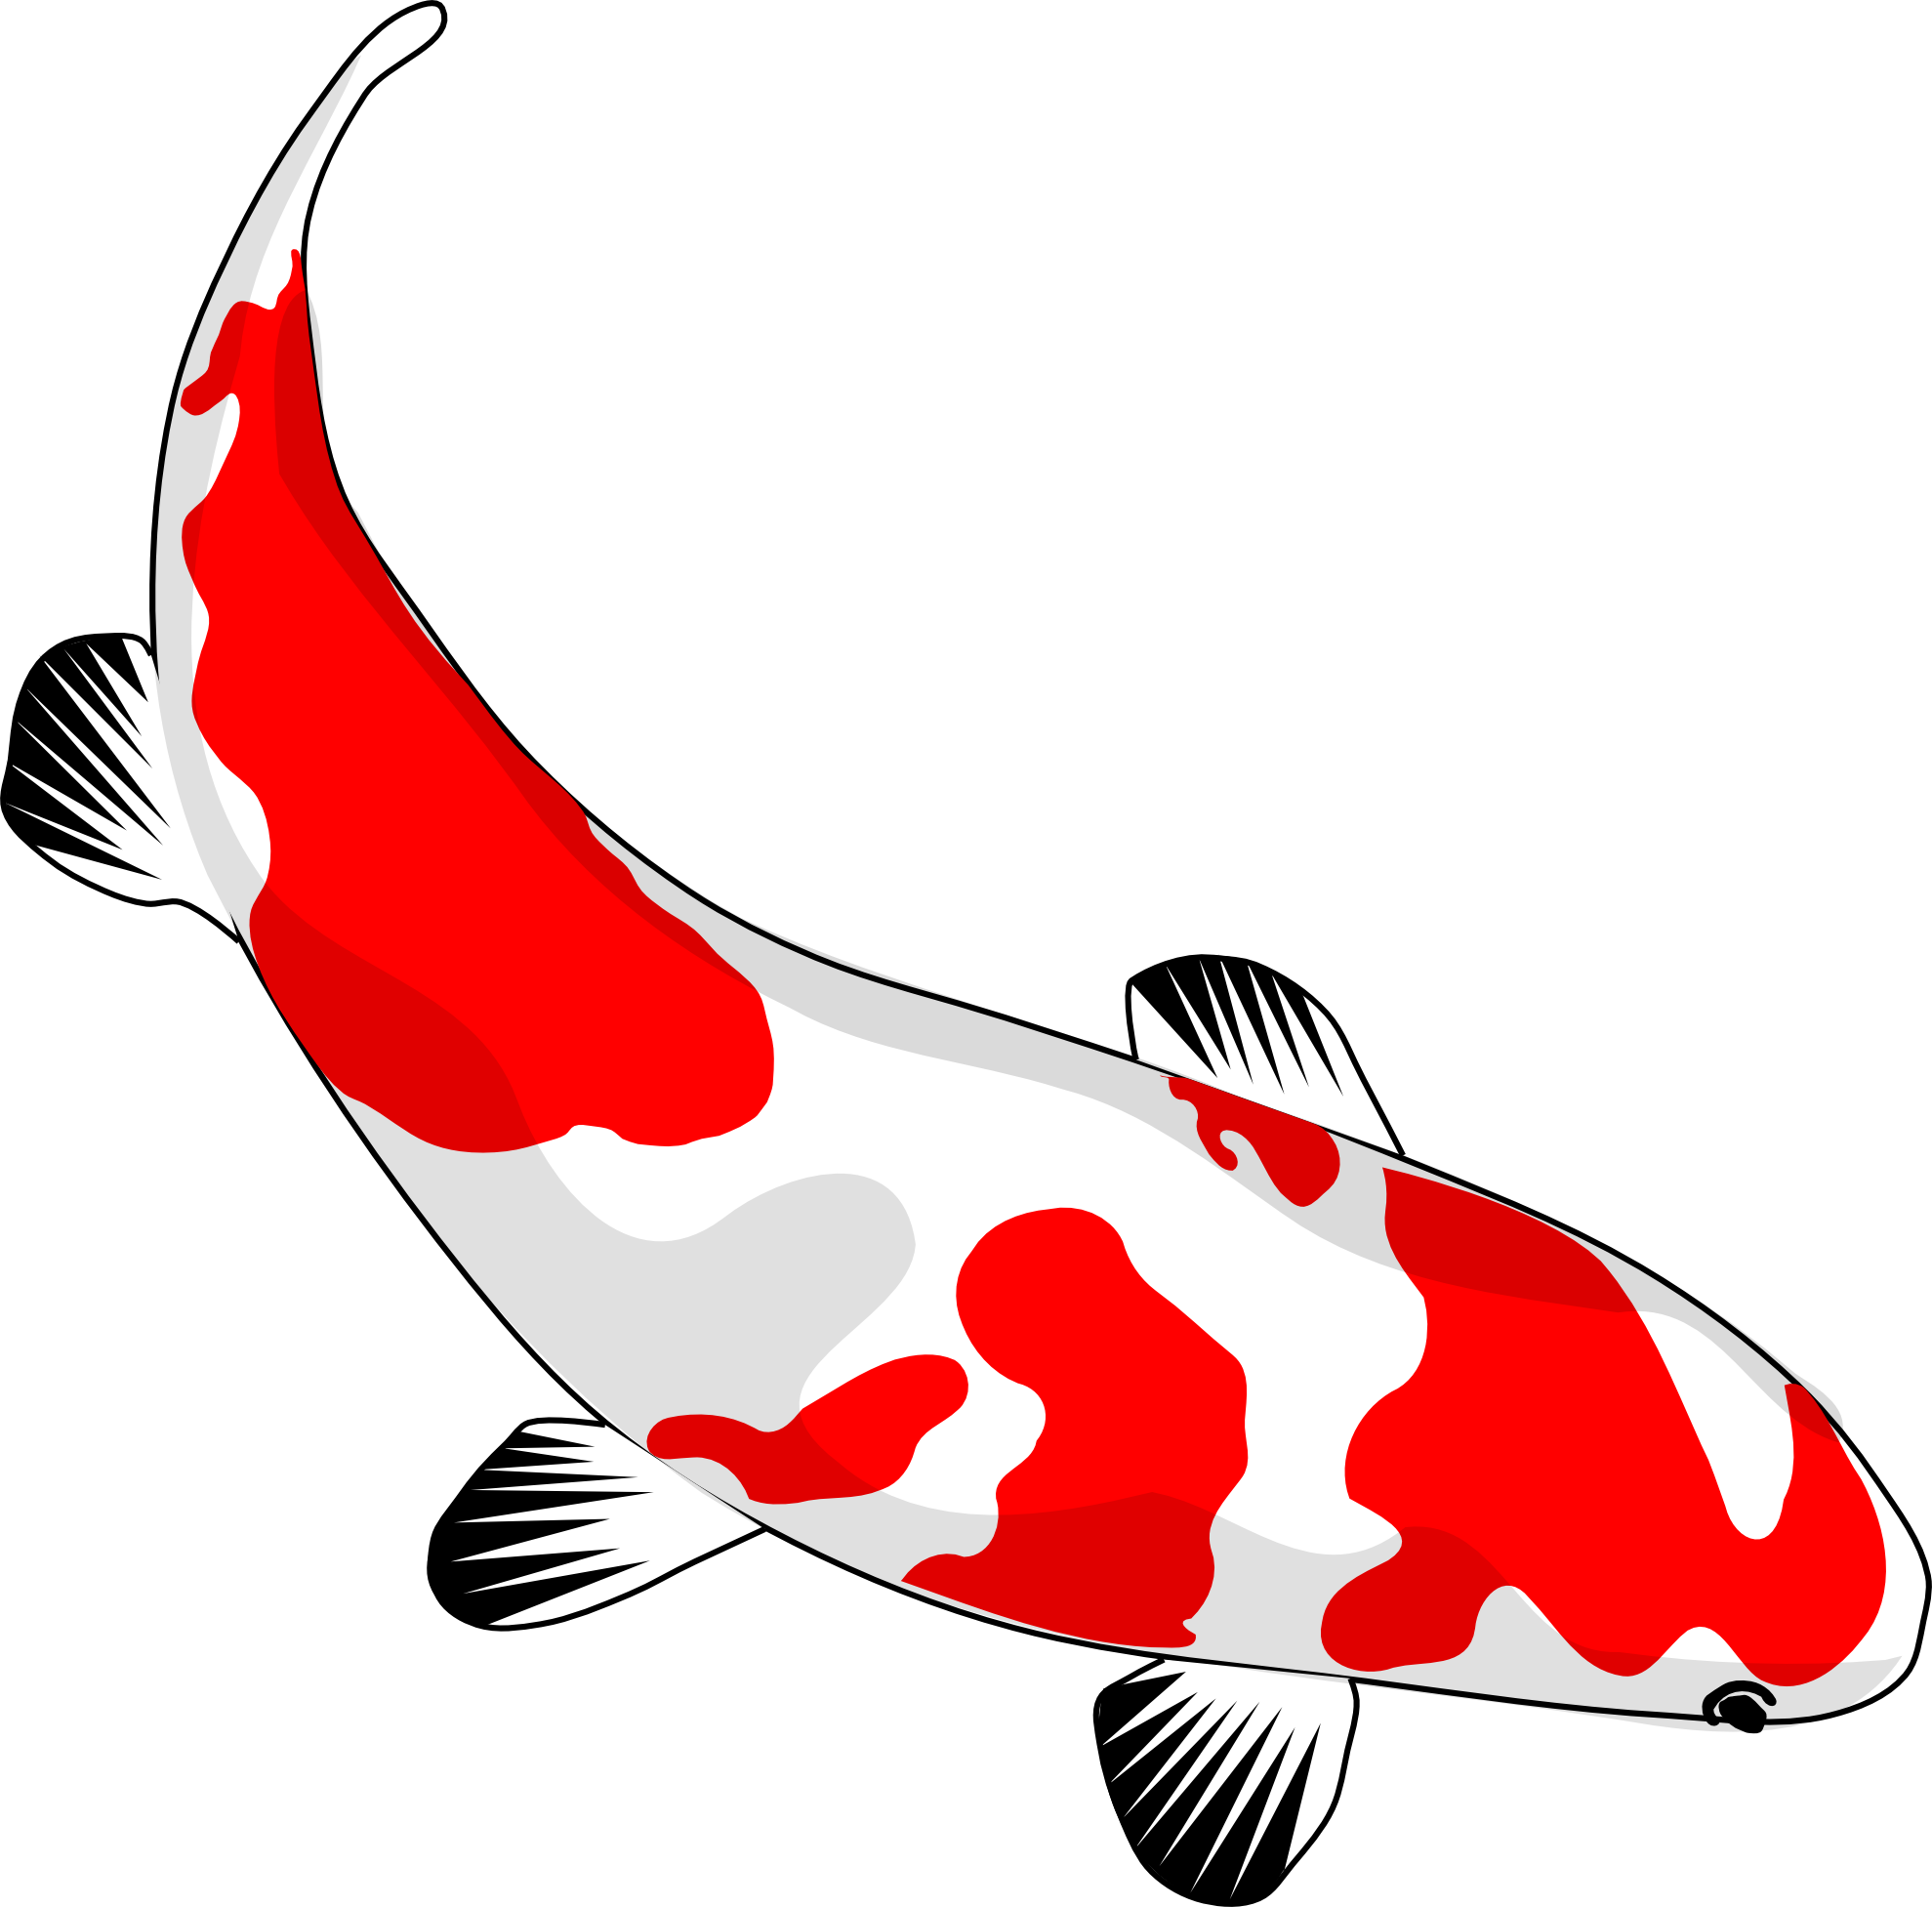 Koi Fish Outline Drawing at GetDrawings.com | Free for personal use ...